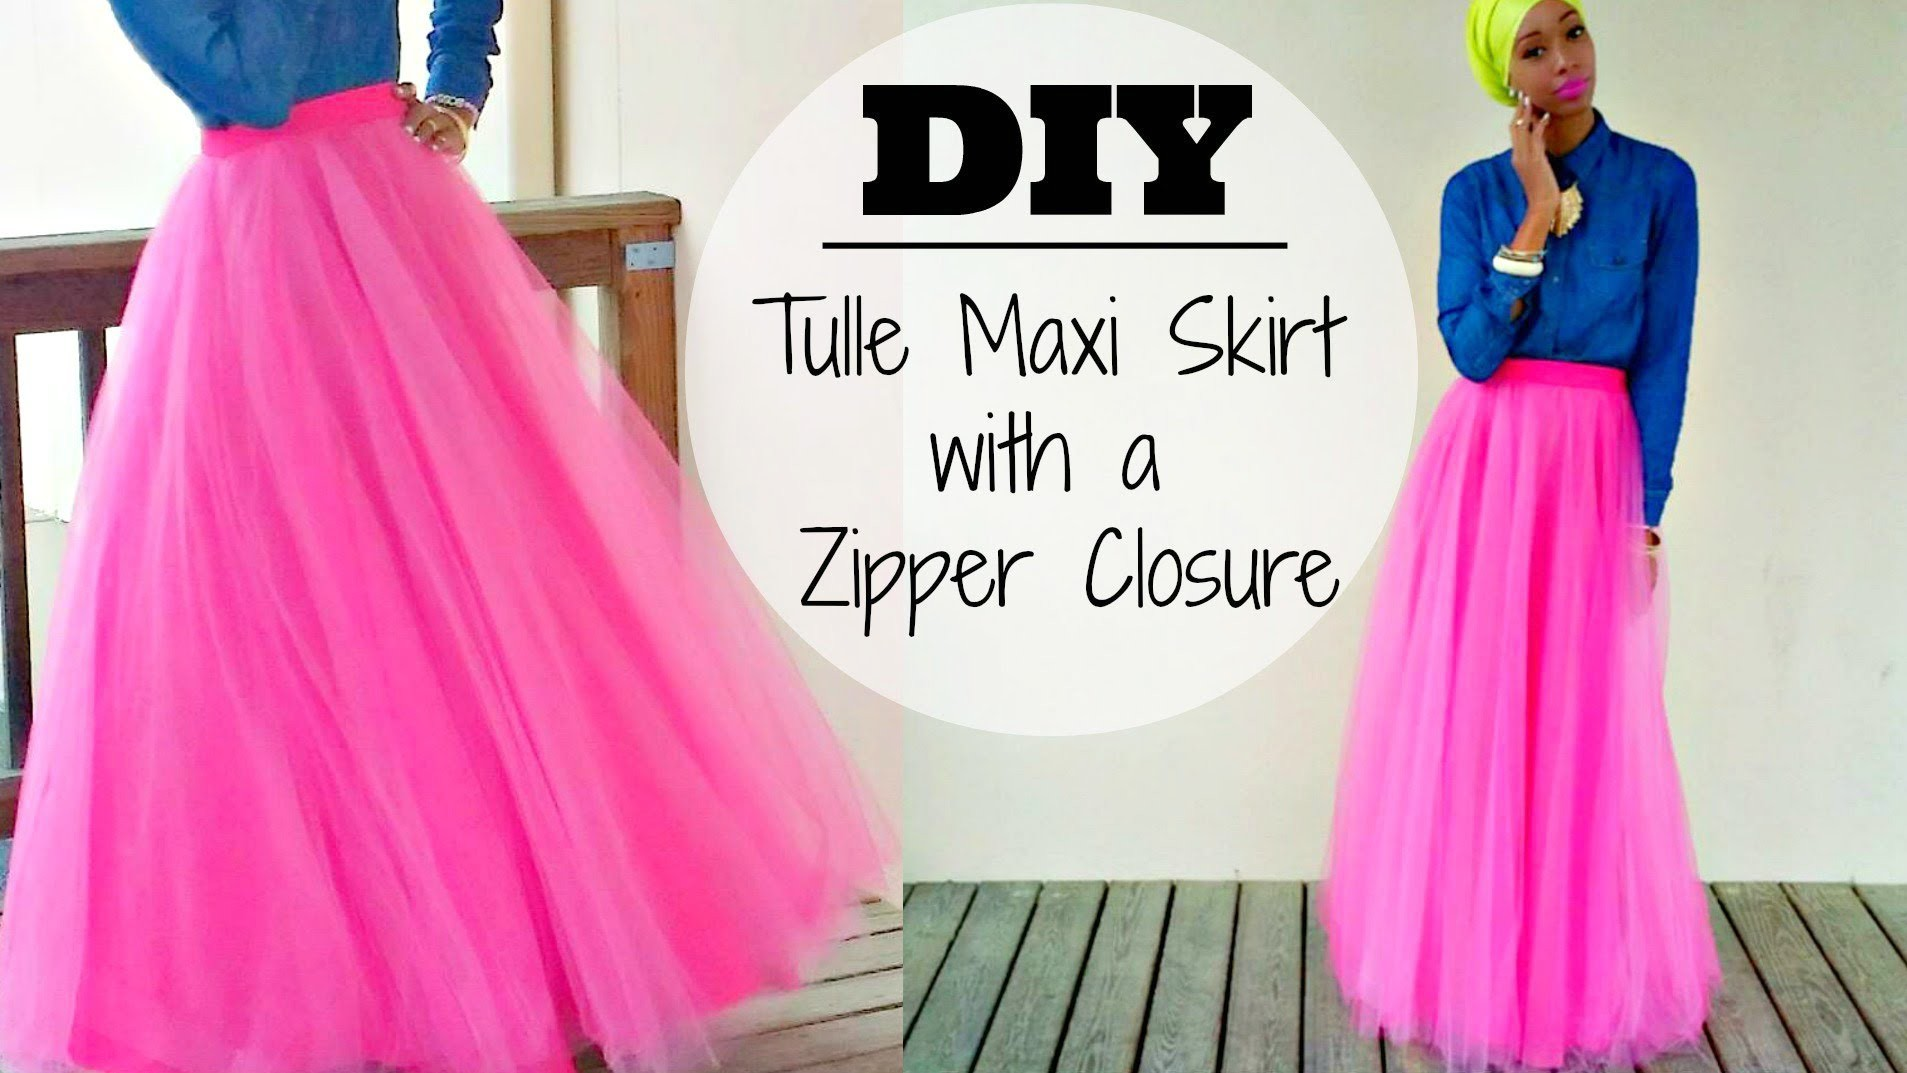 DIY | Tulle Maxi Skirt | With a Hidden Zipper